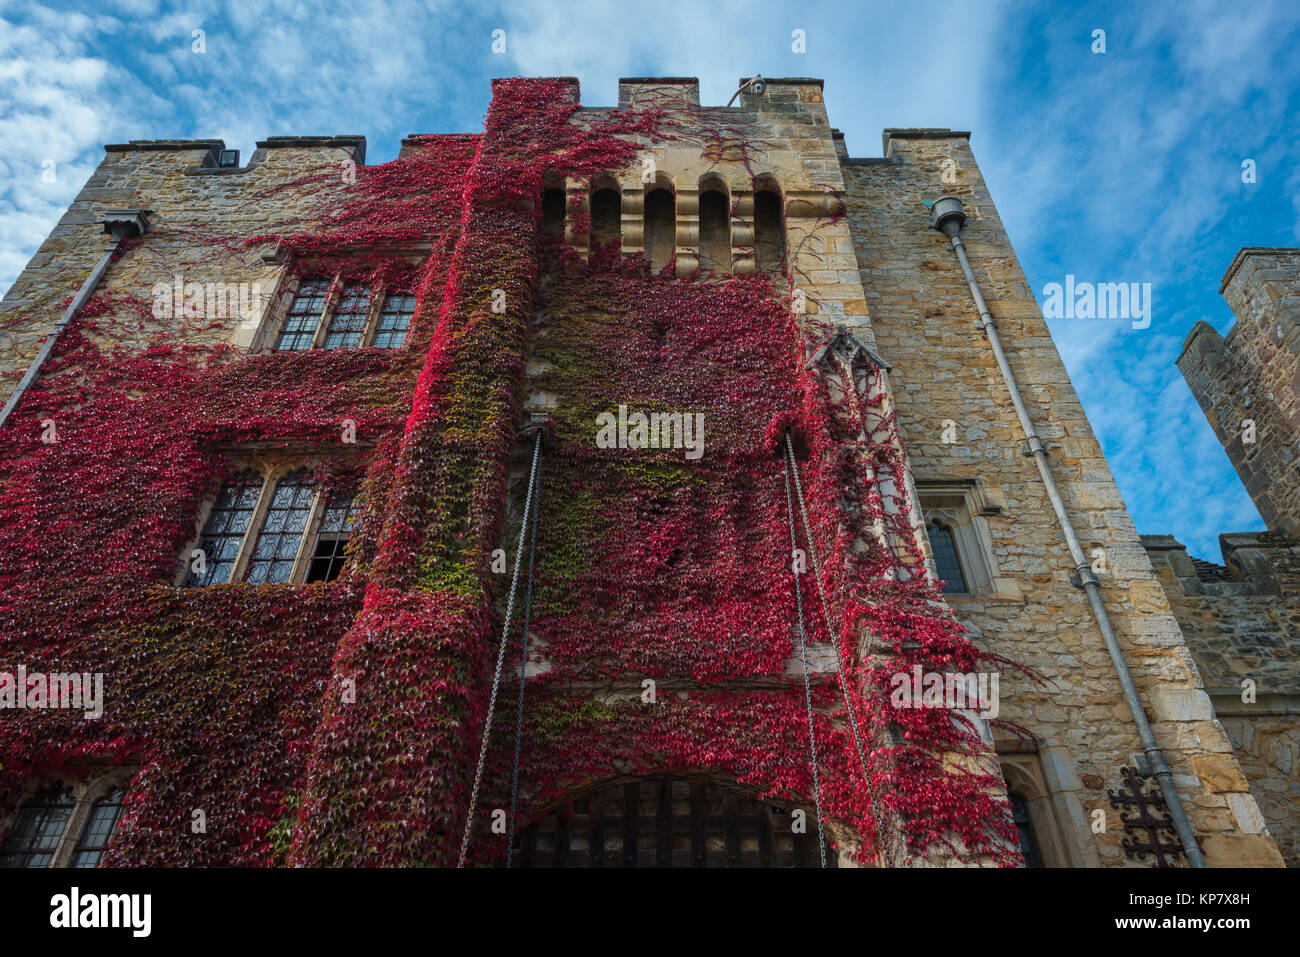 Hever Castle near Edenbridge, the seat of the Boleyn family, Kent, United Kingdom - Stock Image